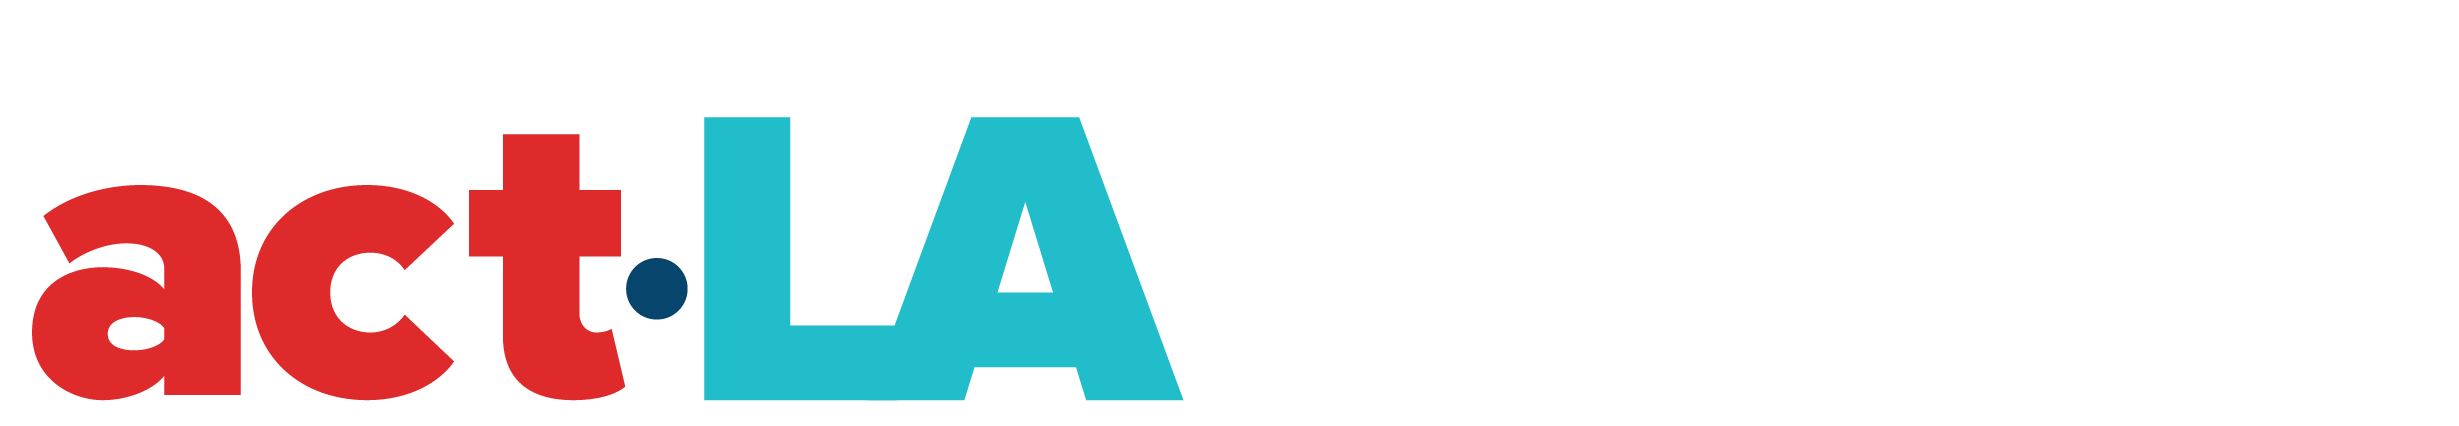 act-la-community-logo-02.png